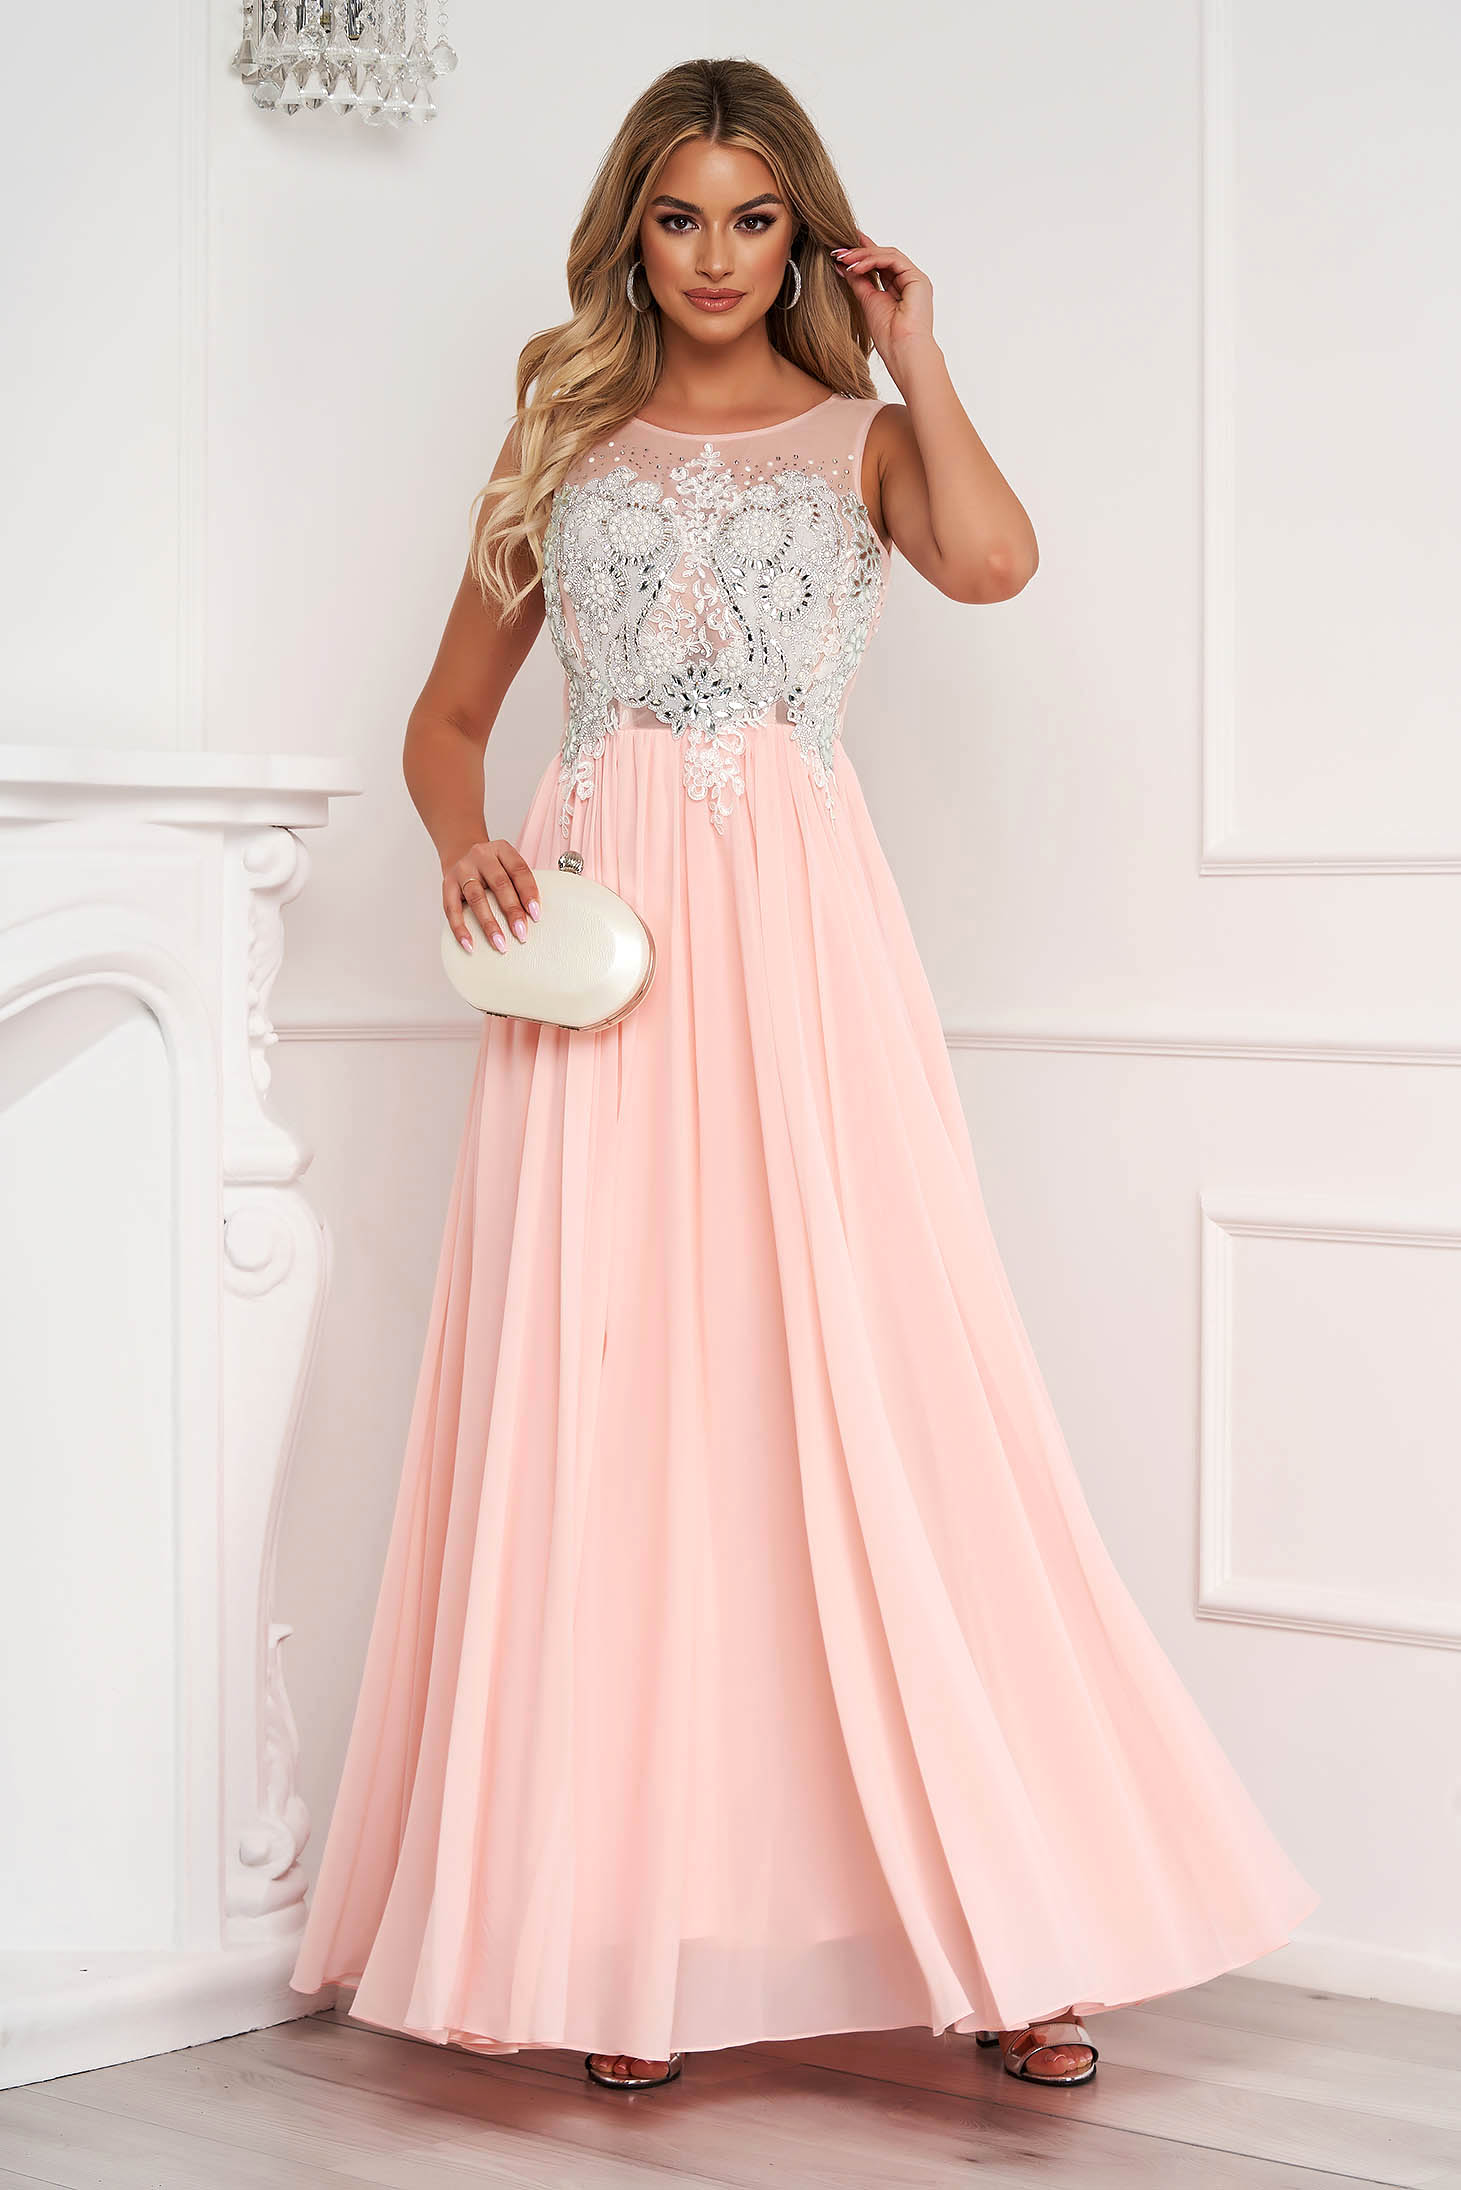 Lightpink dress long cloche from veil fabric with crystal embellished details sleeveless occasional